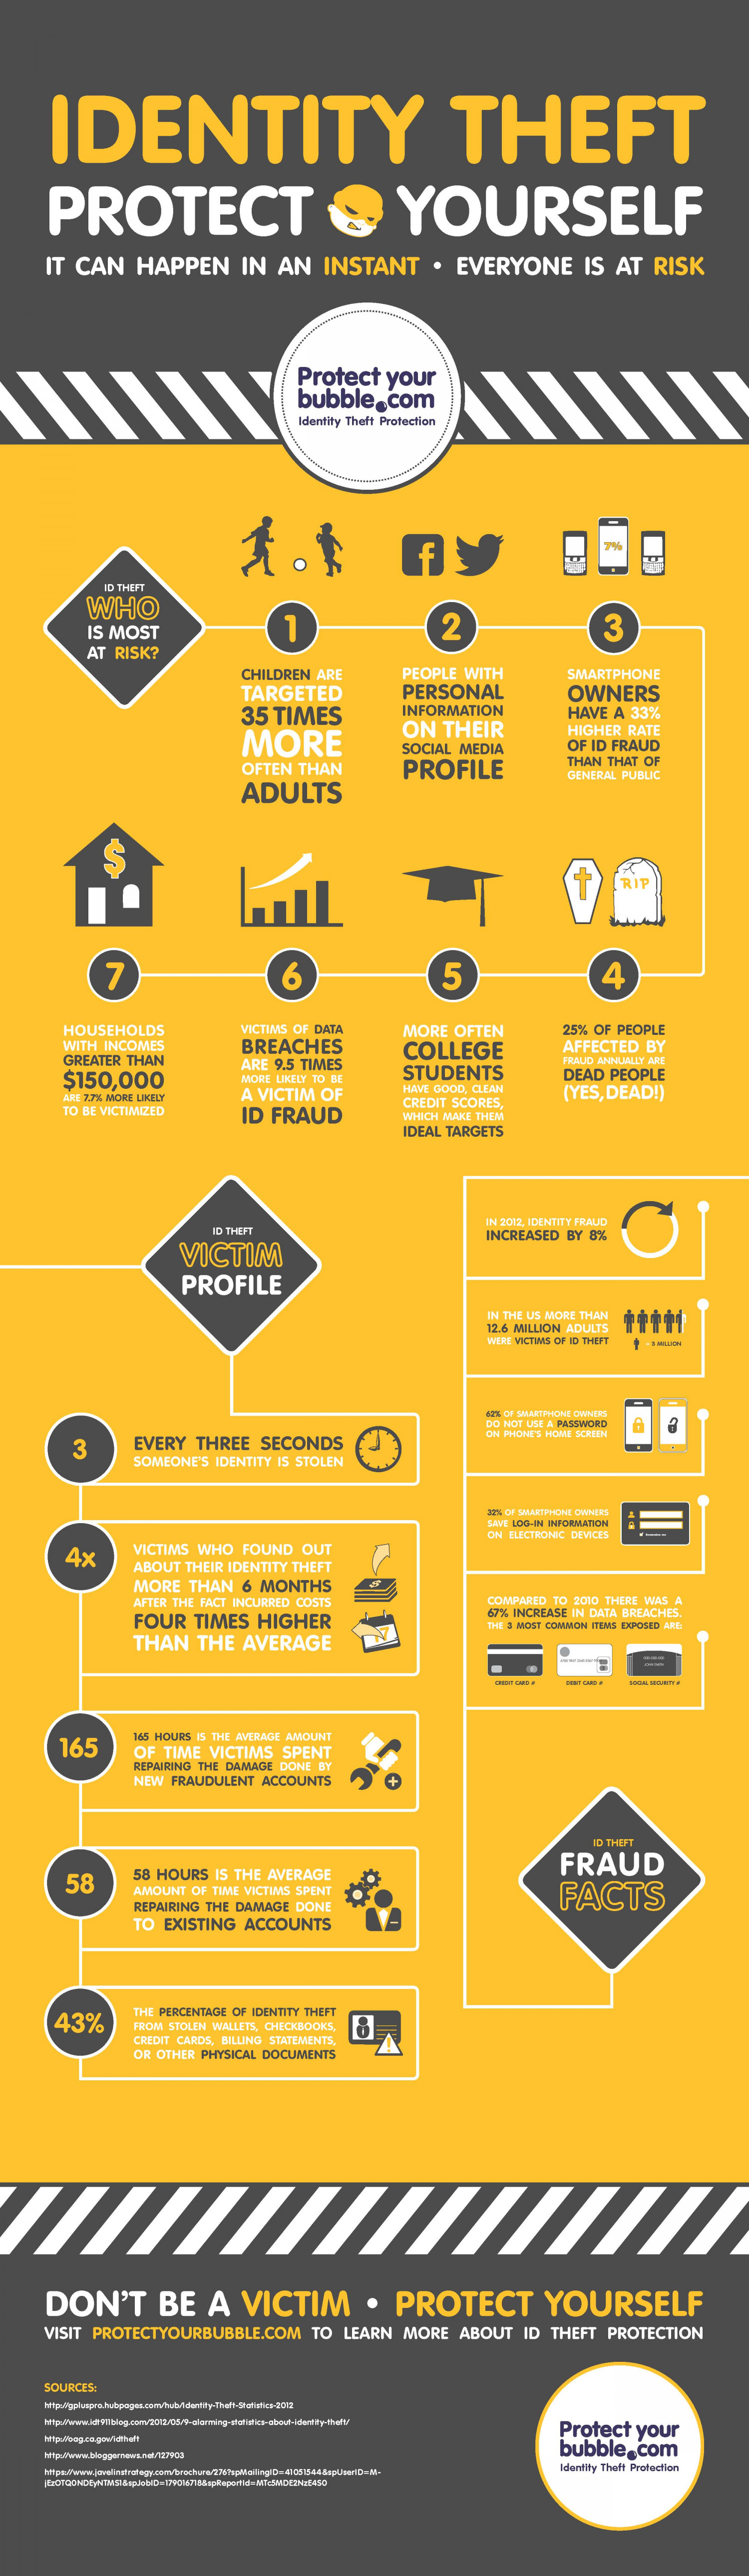 Identity Theft - Who's Most at Risk? Infographic